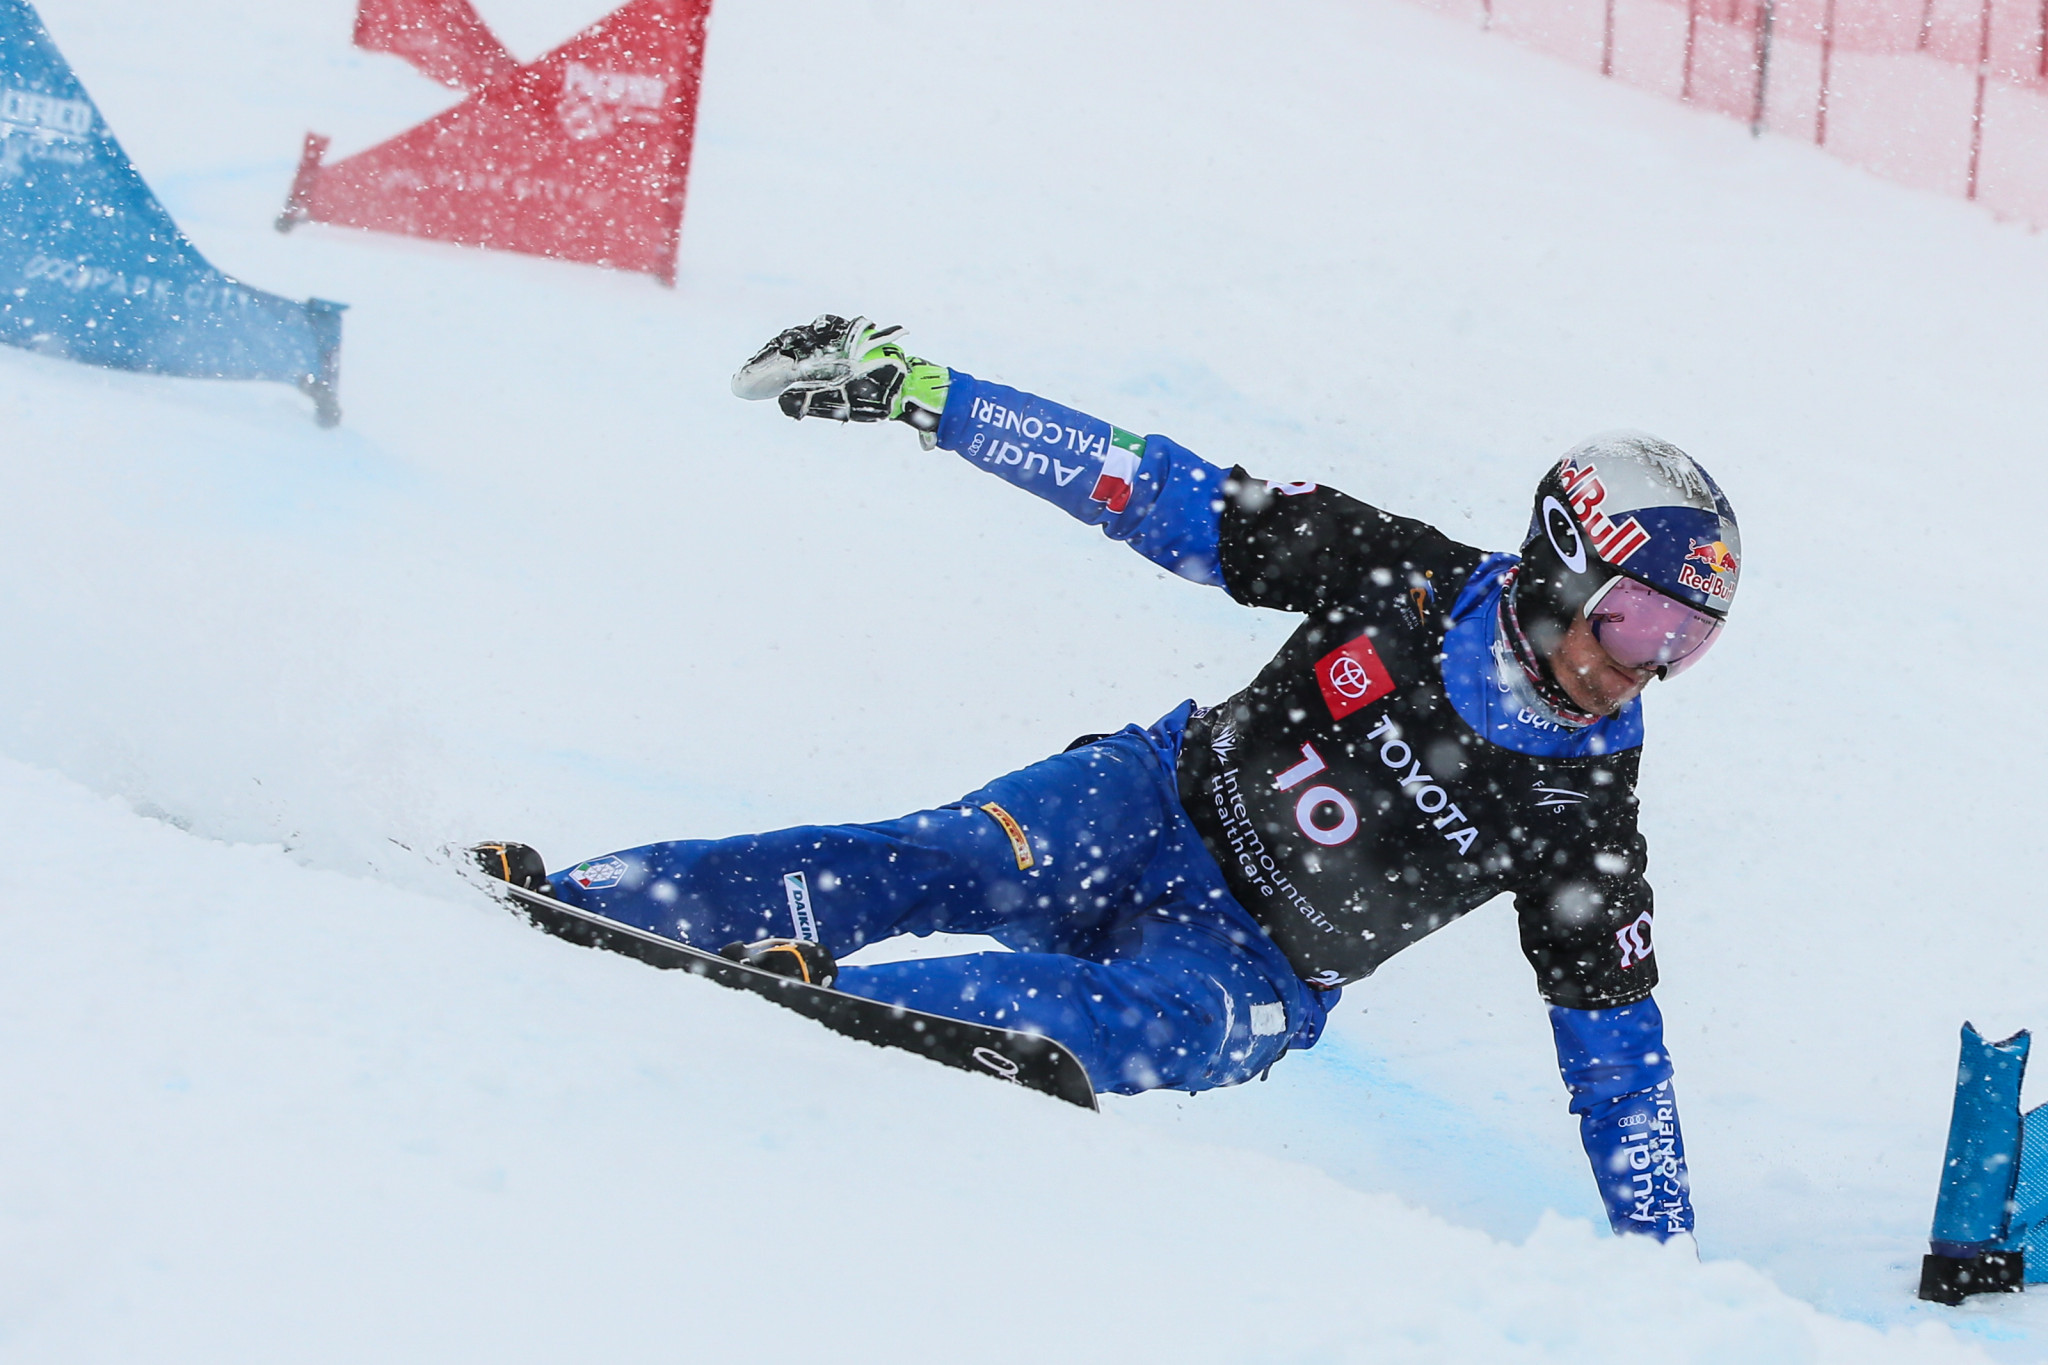 Parallel giant slalom to be held at FIS Alpine Snowboard World Cup in Rogla